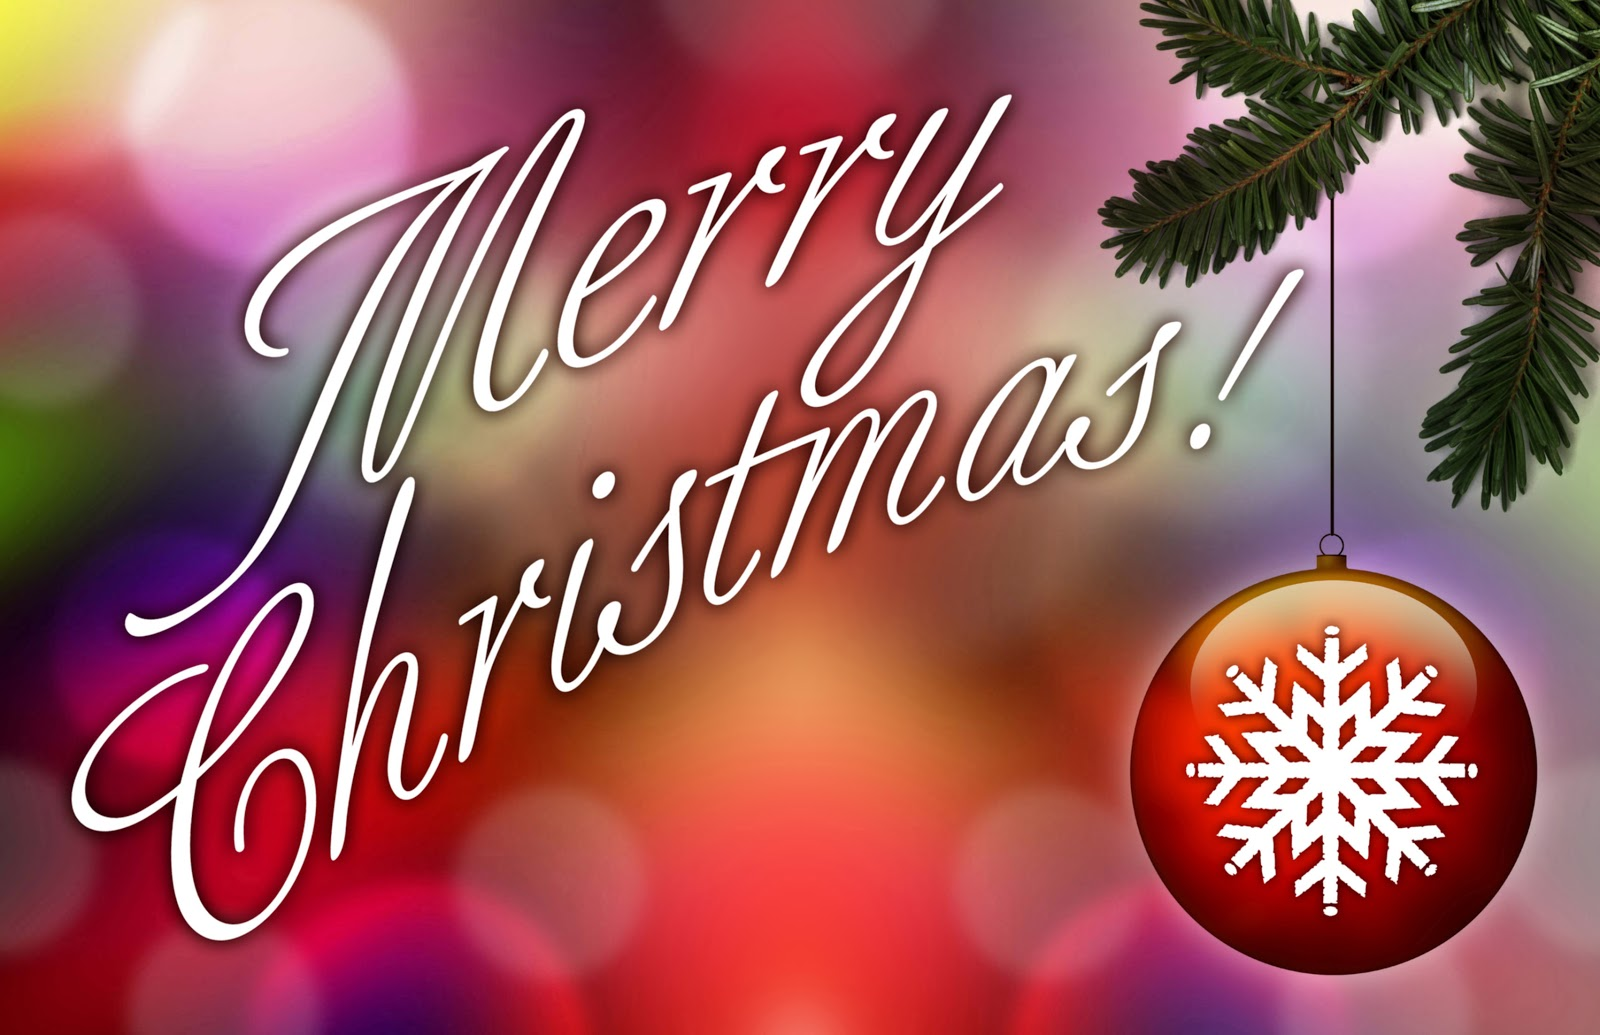 Merry Xmas Sms & Wishes For Facebook ~ Hindi Sms, Good Morning SMS ...